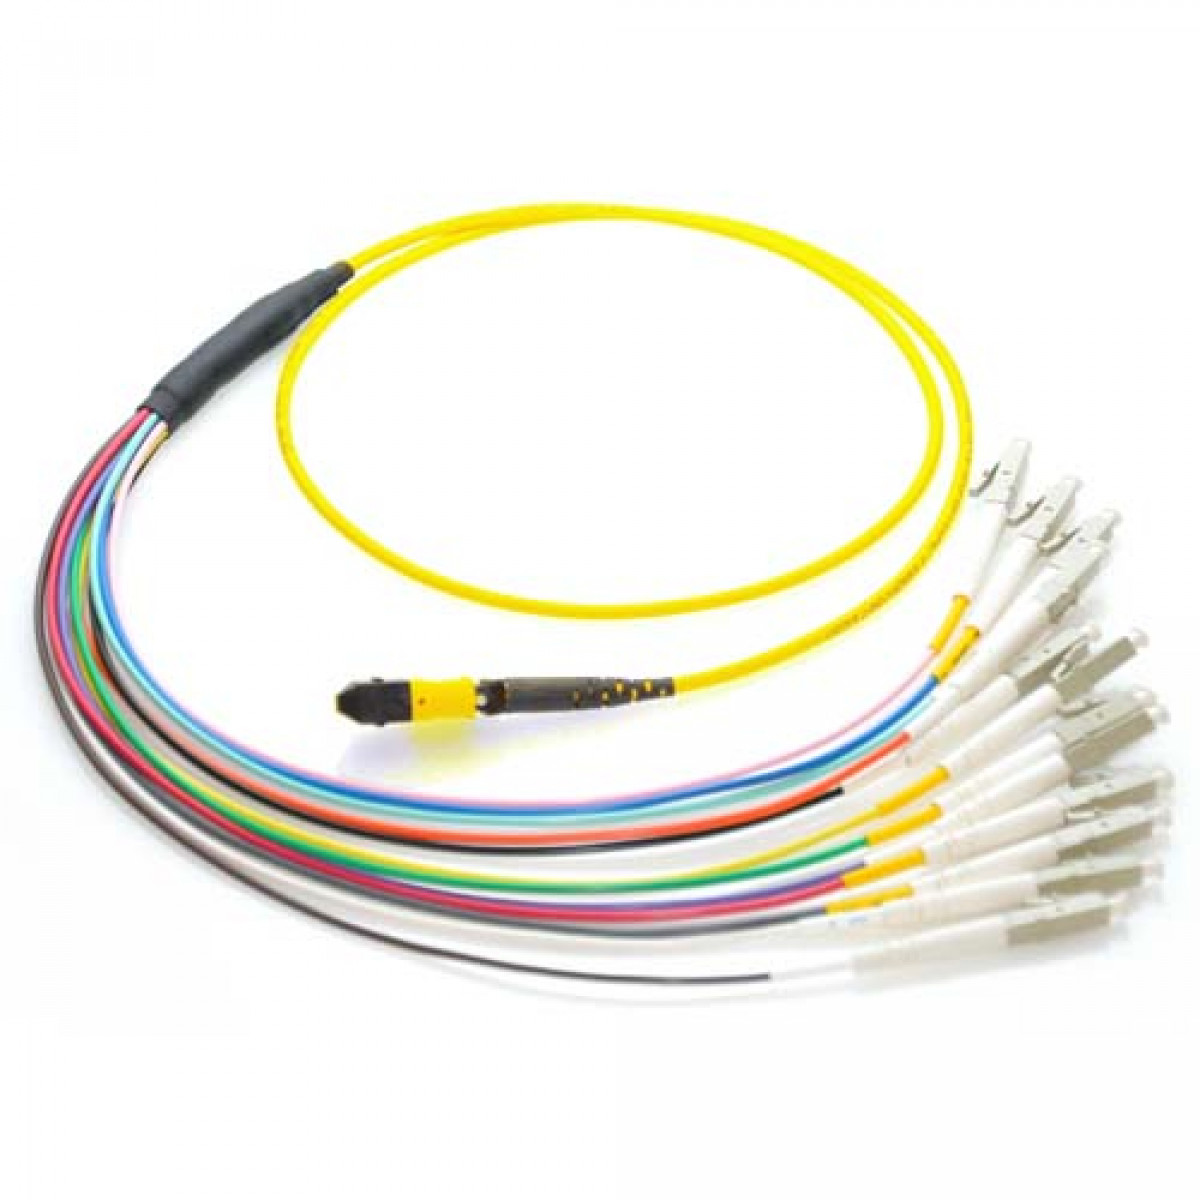 25m Mtp To Lc 9 125 Plenum Rated Single Mode 12 Strand Fiber Patch Cat5e Ethernet Cable Snagless 2539 Black Yellow